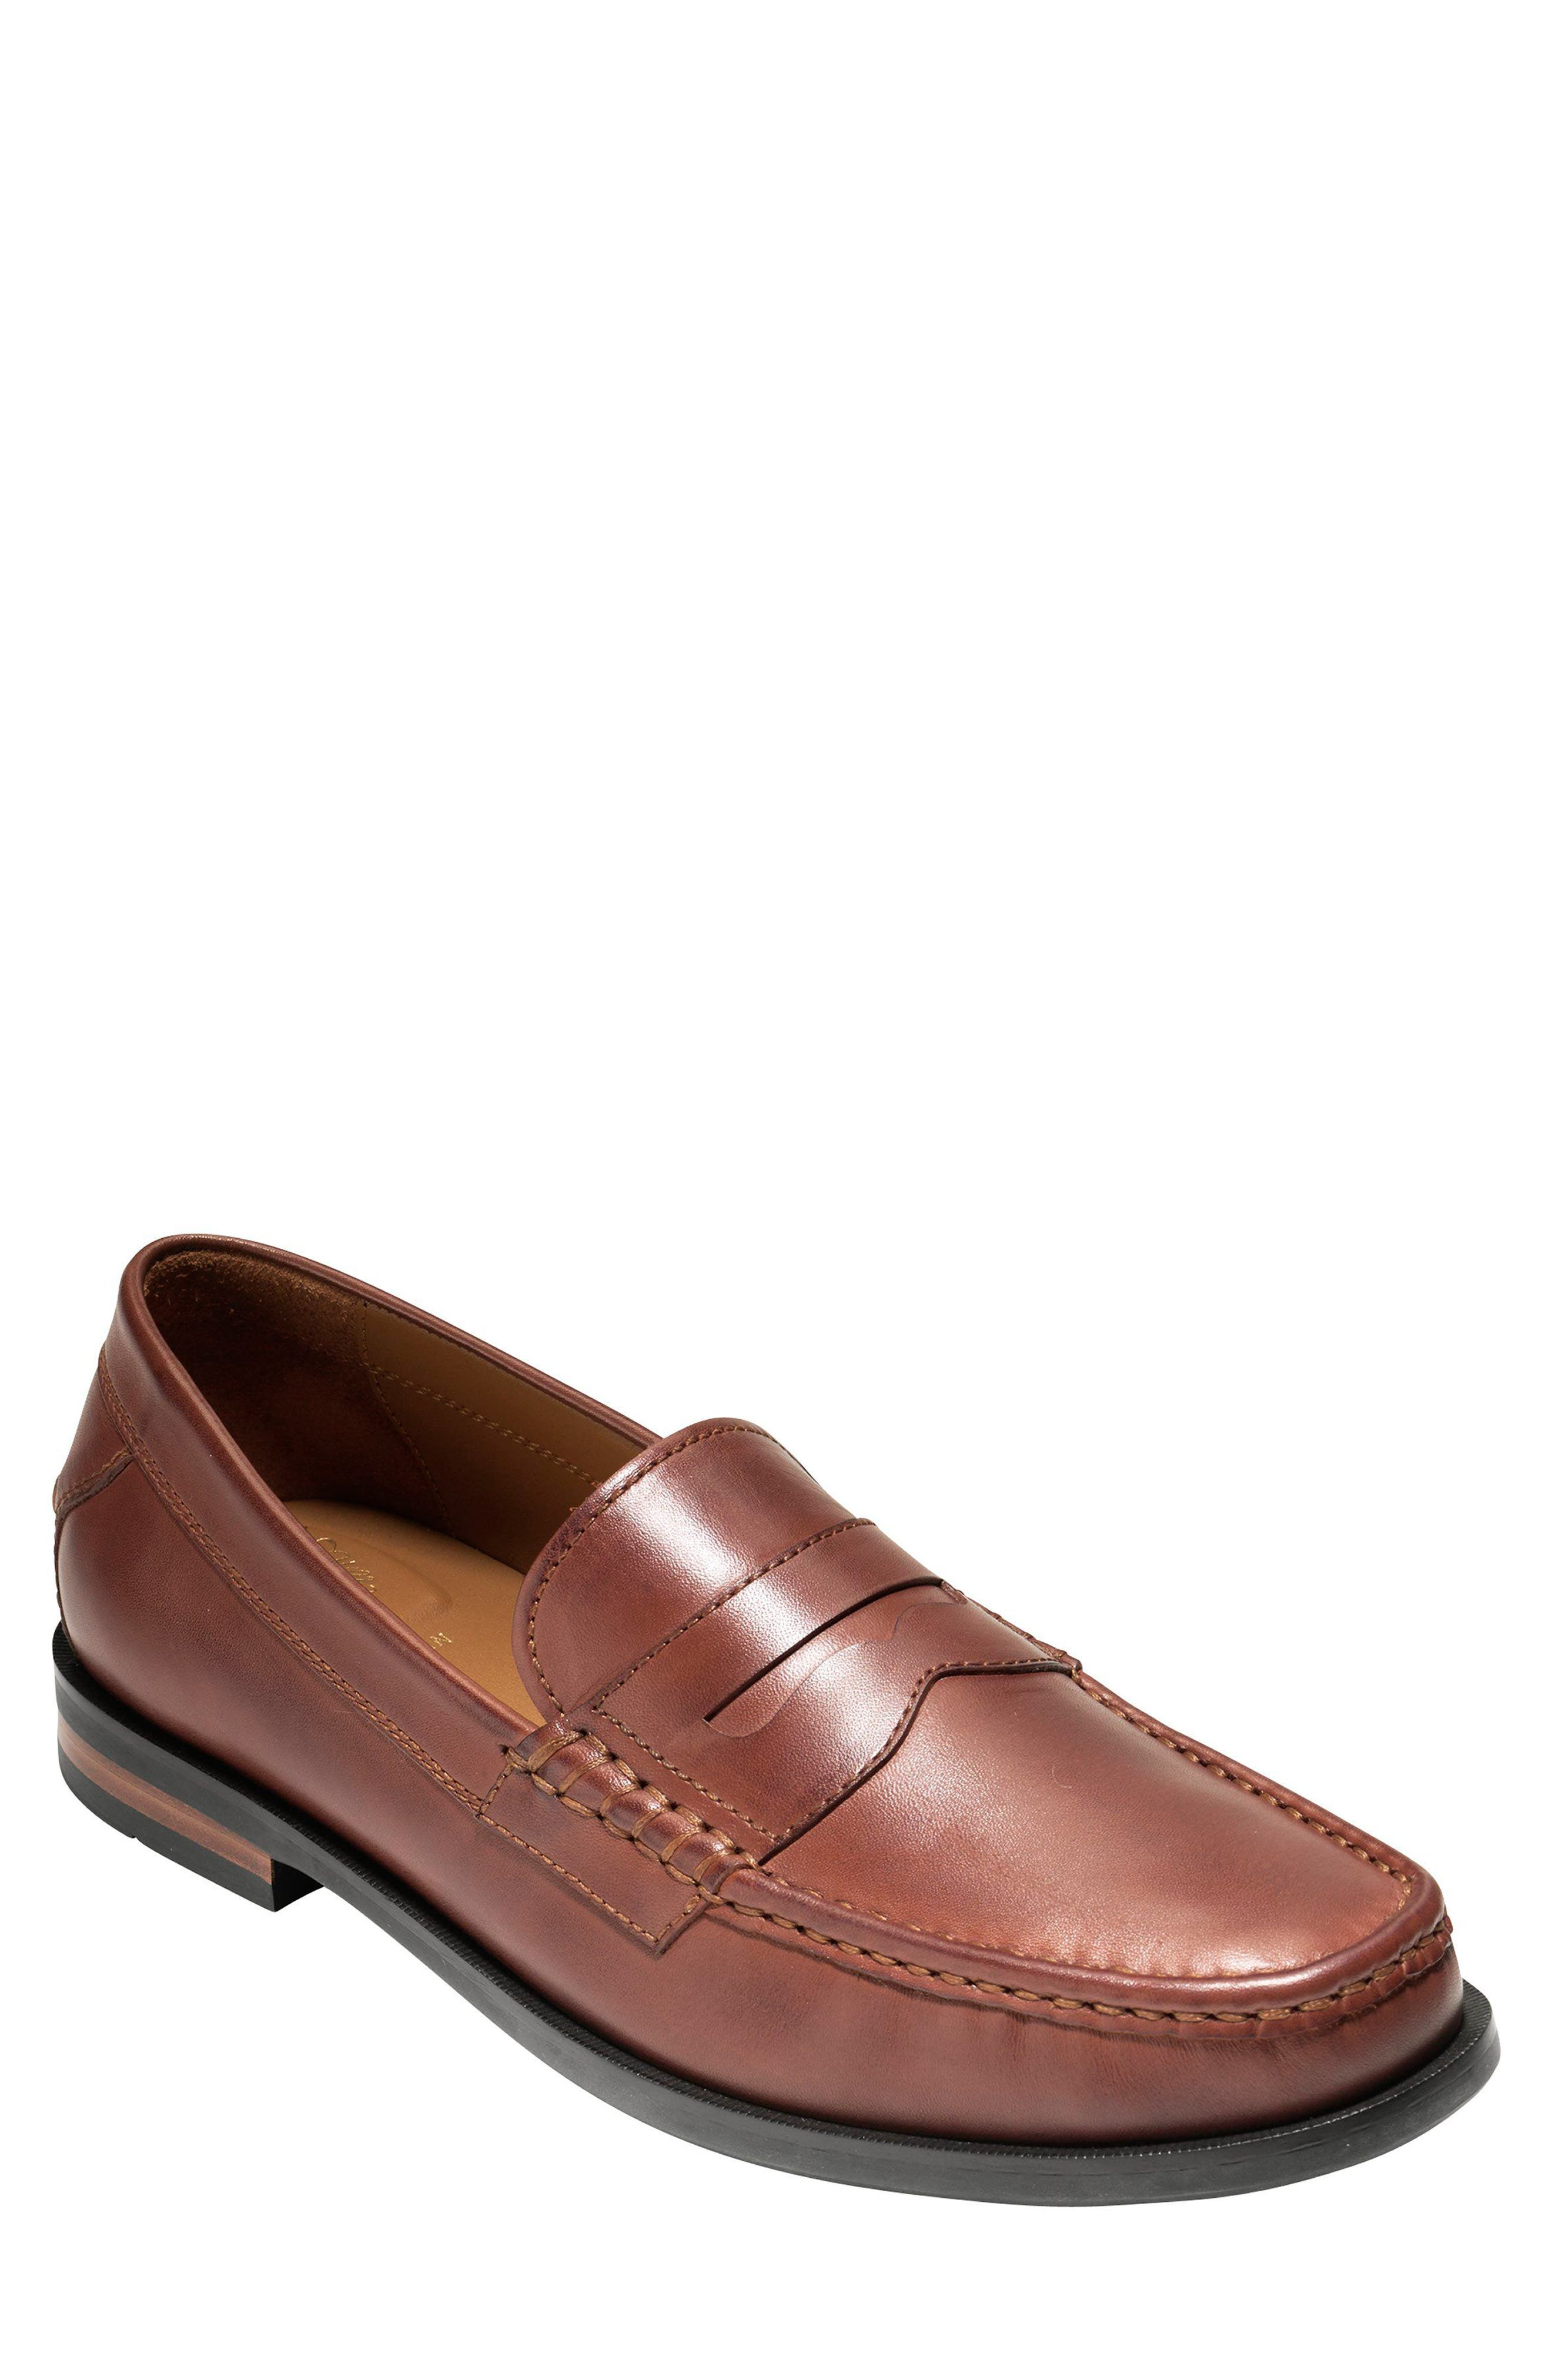 Alternate Image 1 Selected - Cole Haan Pinch Friday Penny Loafer (Men)